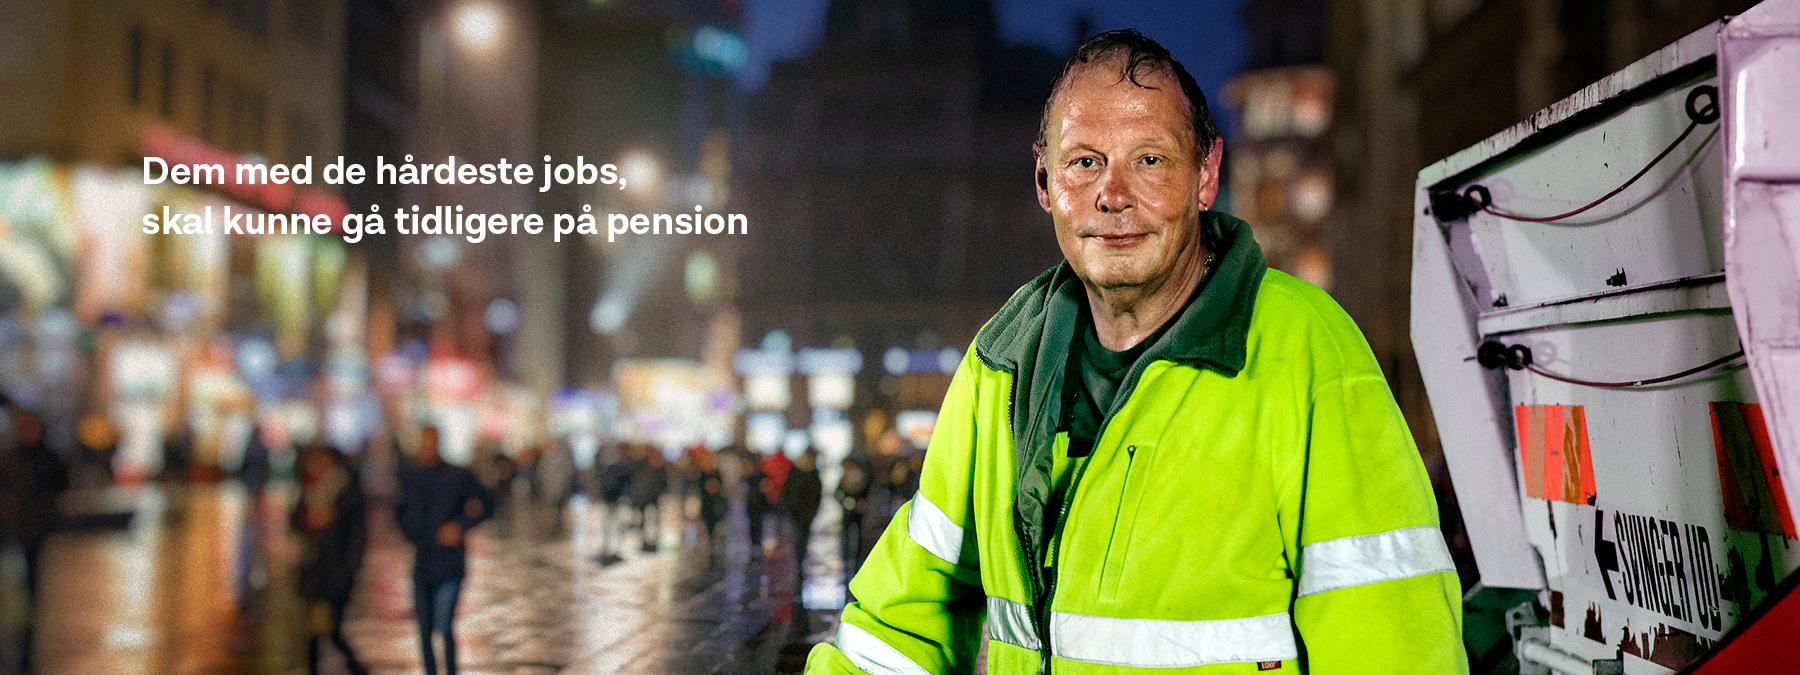 Pension 2020 Banner 1800x675_2